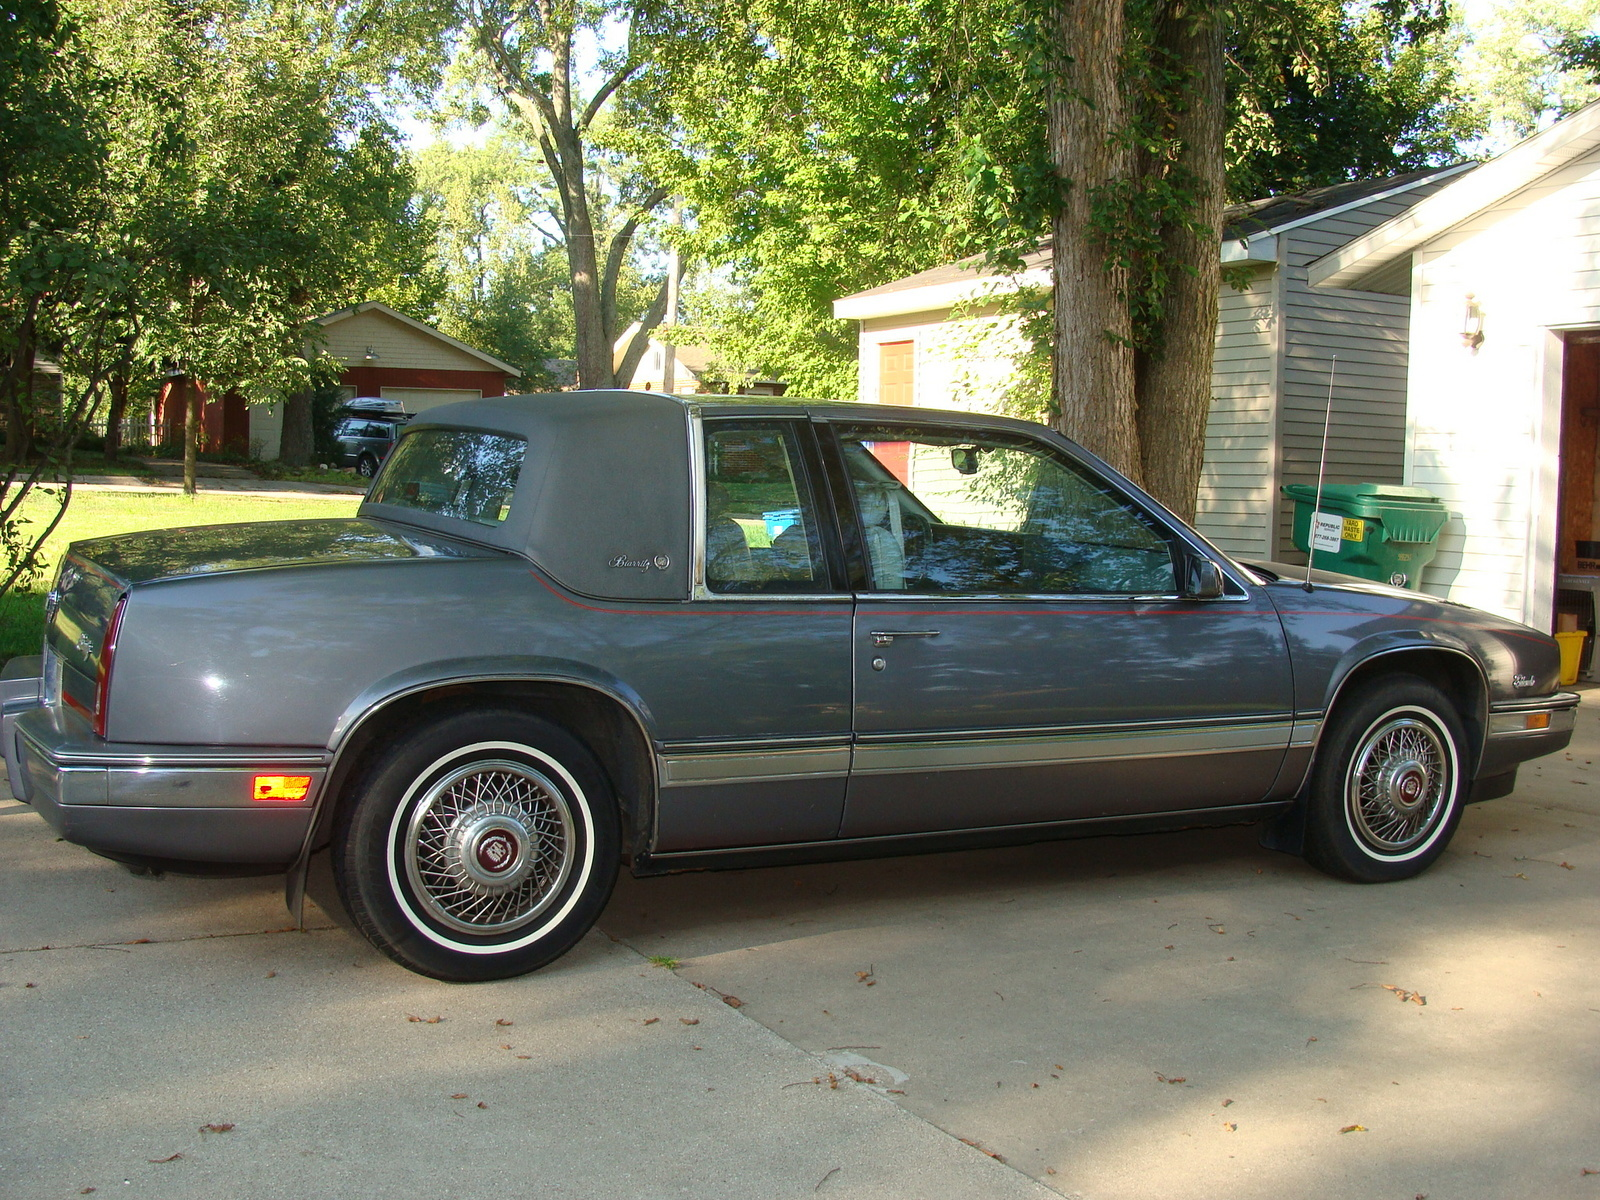 1987 Cadillac Seville - User Reviews - CarGurus